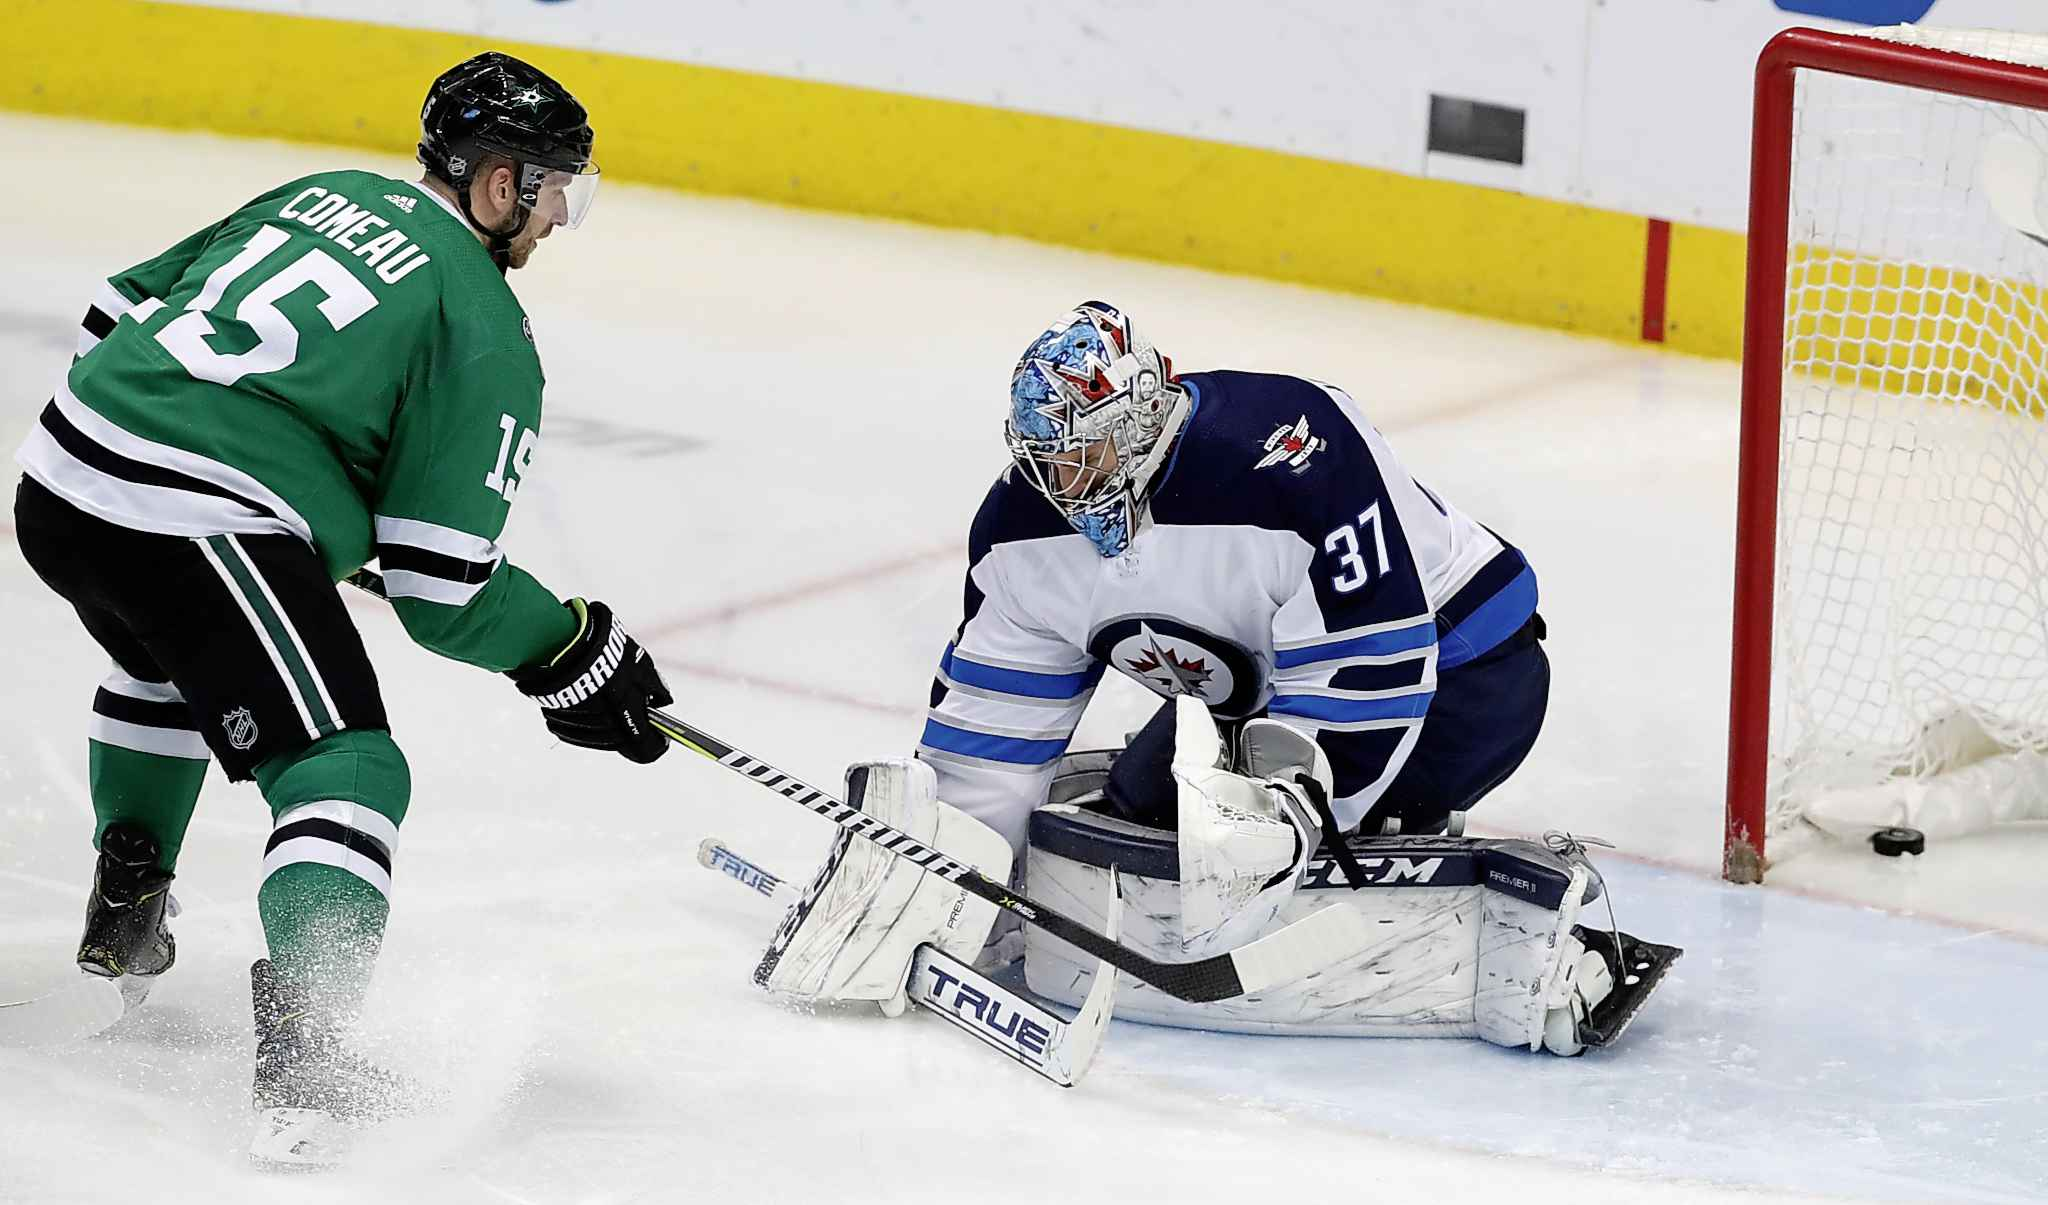 LM OTERO / THE ASSOCIATED PRESS</p><p>Dallas Stars left wing Blake Comeau (15) scores a goal against Winnipeg Jets goaltender Connor Hellebuyck (37) during the second period of an NHL hockey game in Dallas, Saturday, Jan. 19, 2019.</p>